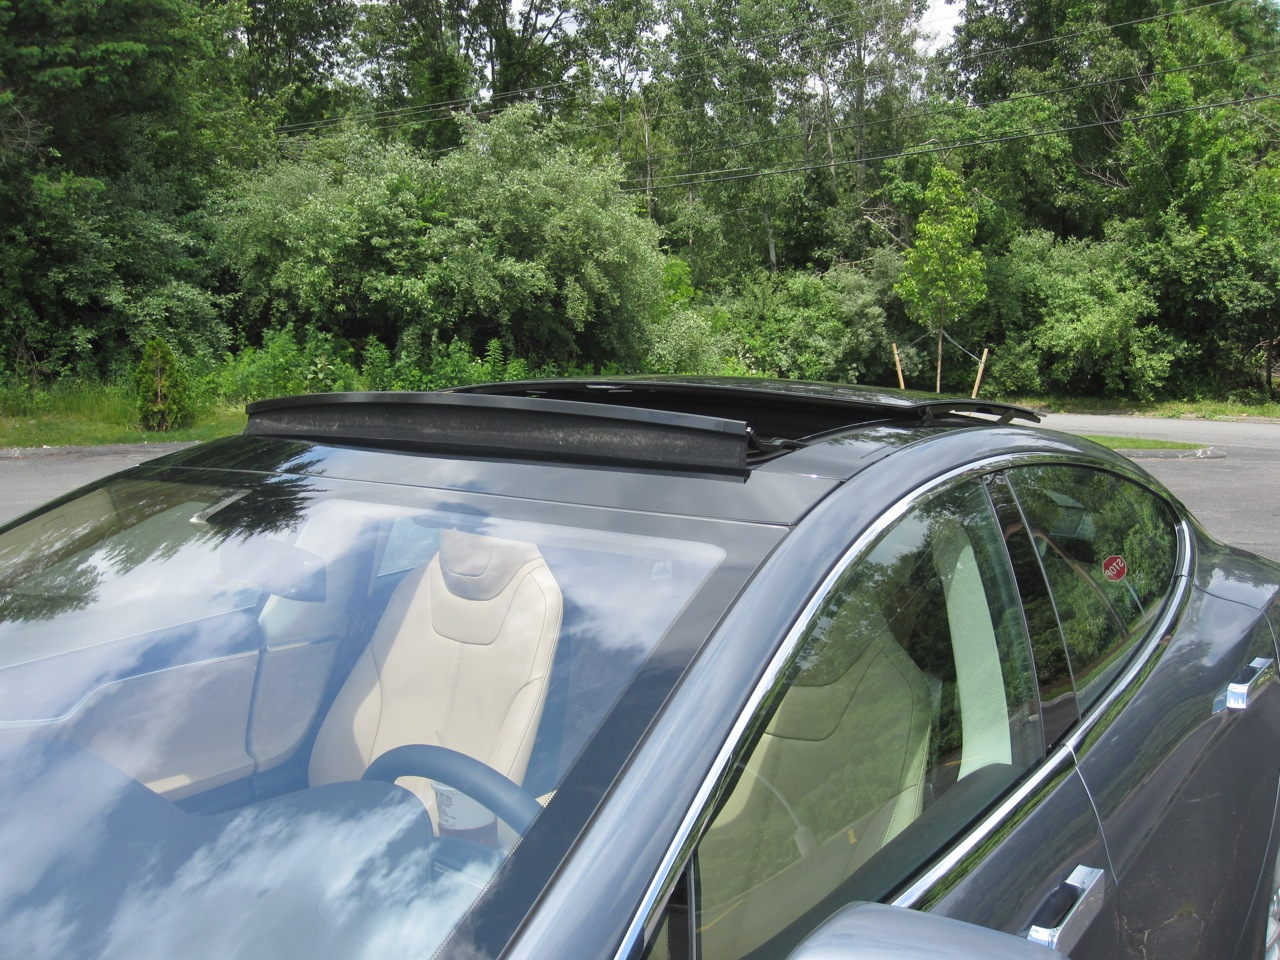 Tesla S Panoramic Sunroof Tesla Living